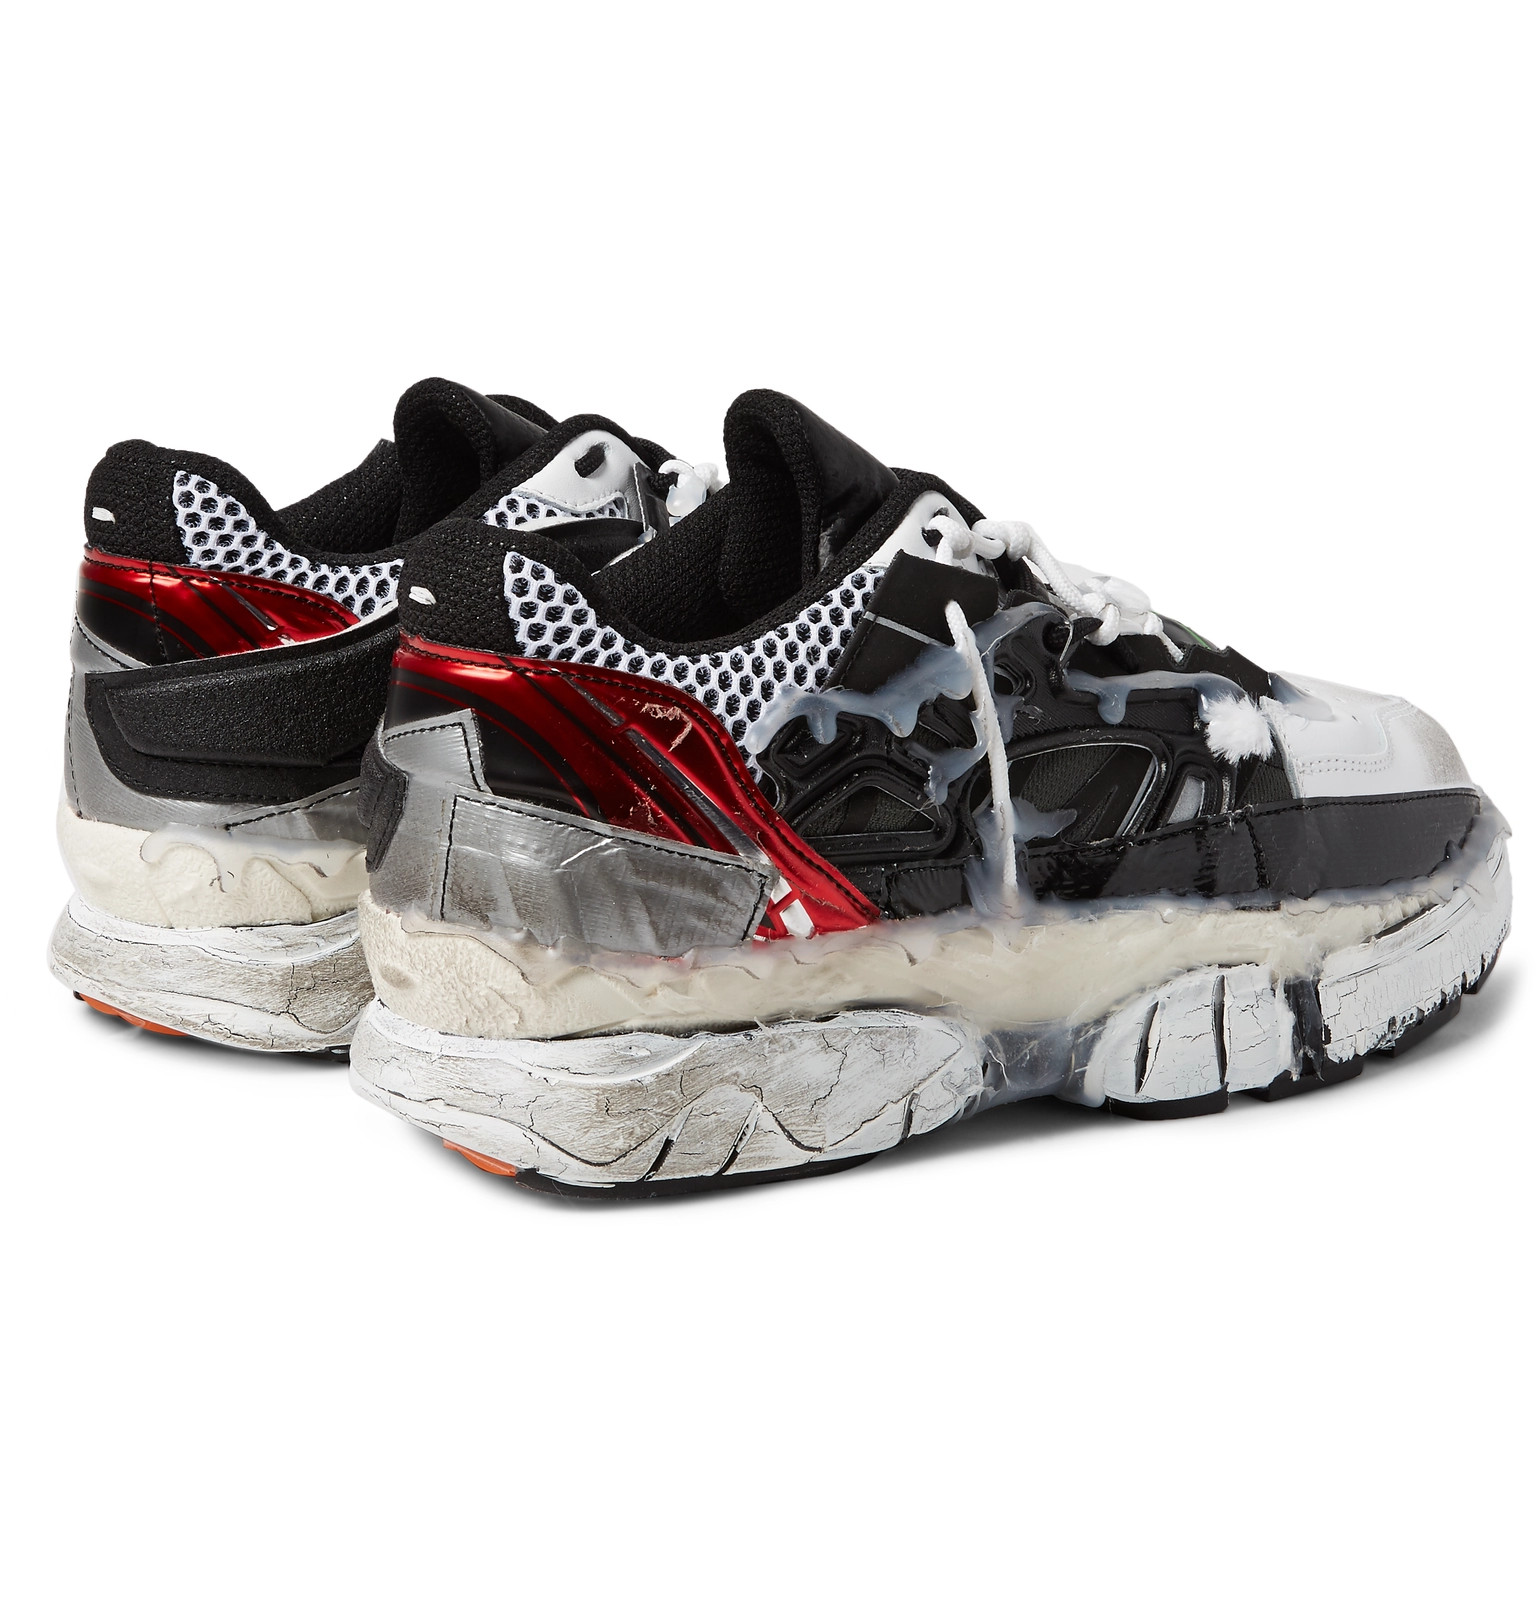 dce733448d9c Maison Margiela - Fusion Rubber-Trimmed Distressed Leather Sneakers